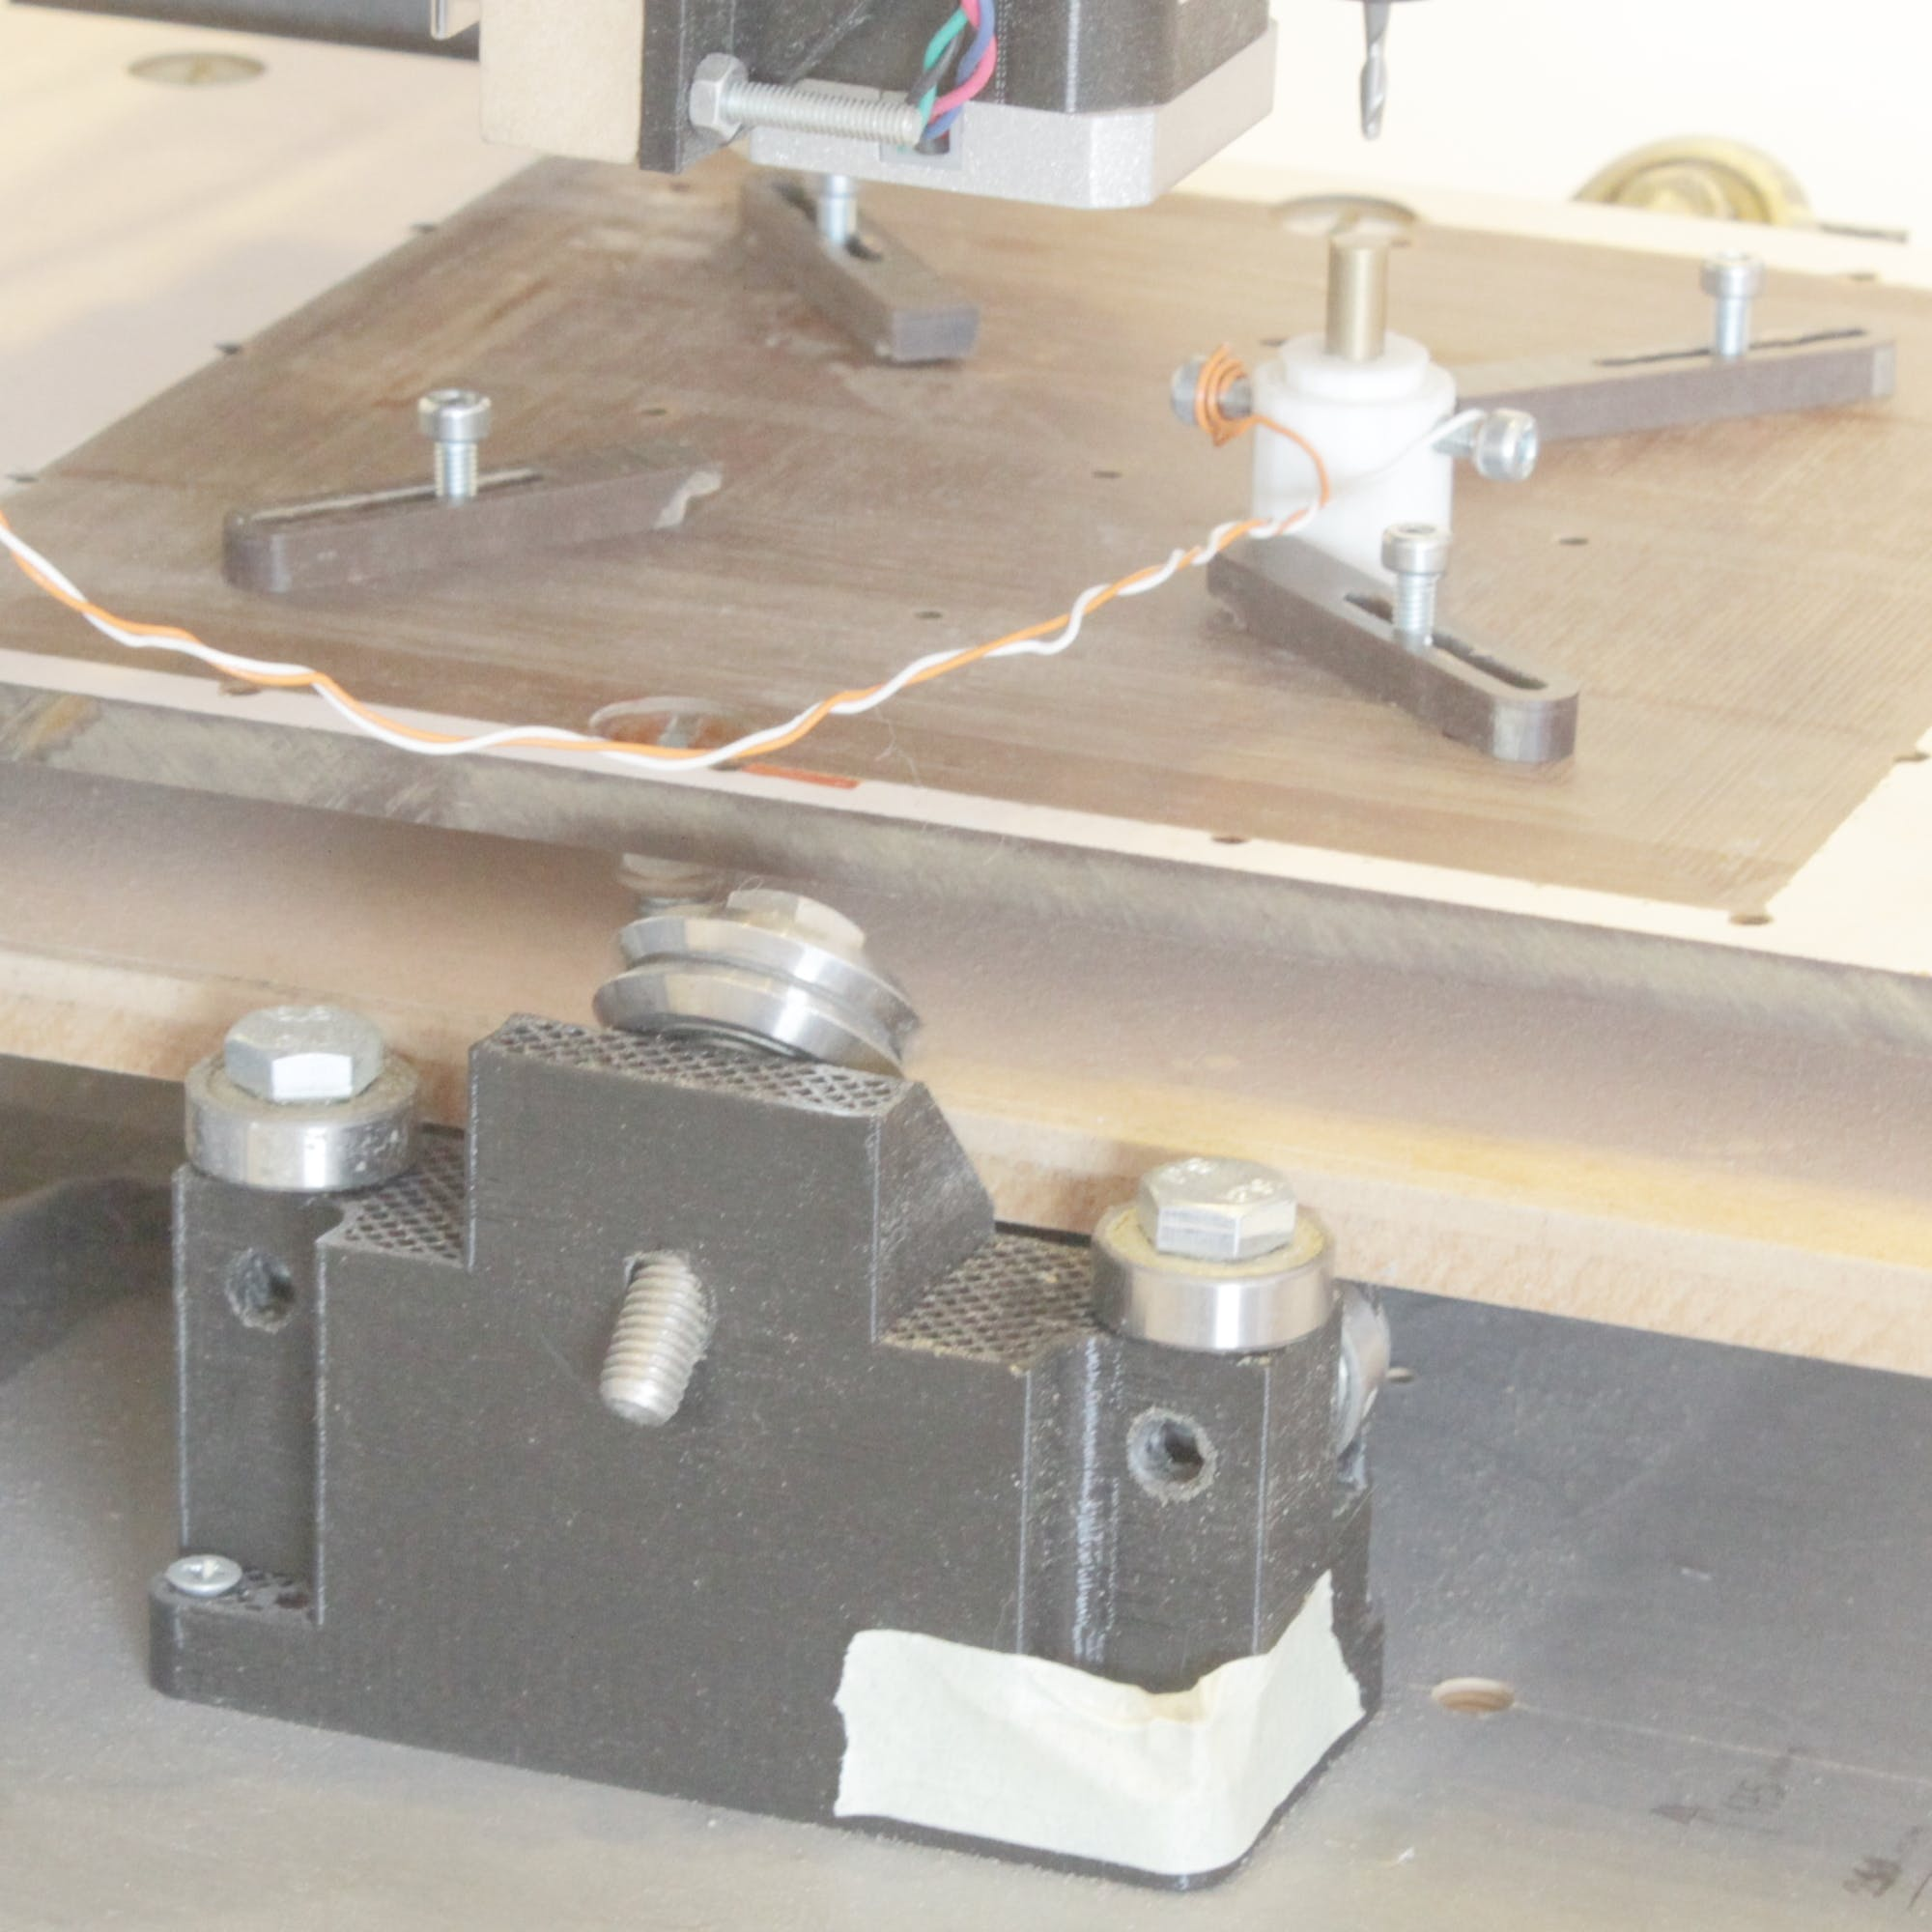 Y tray bearing's support